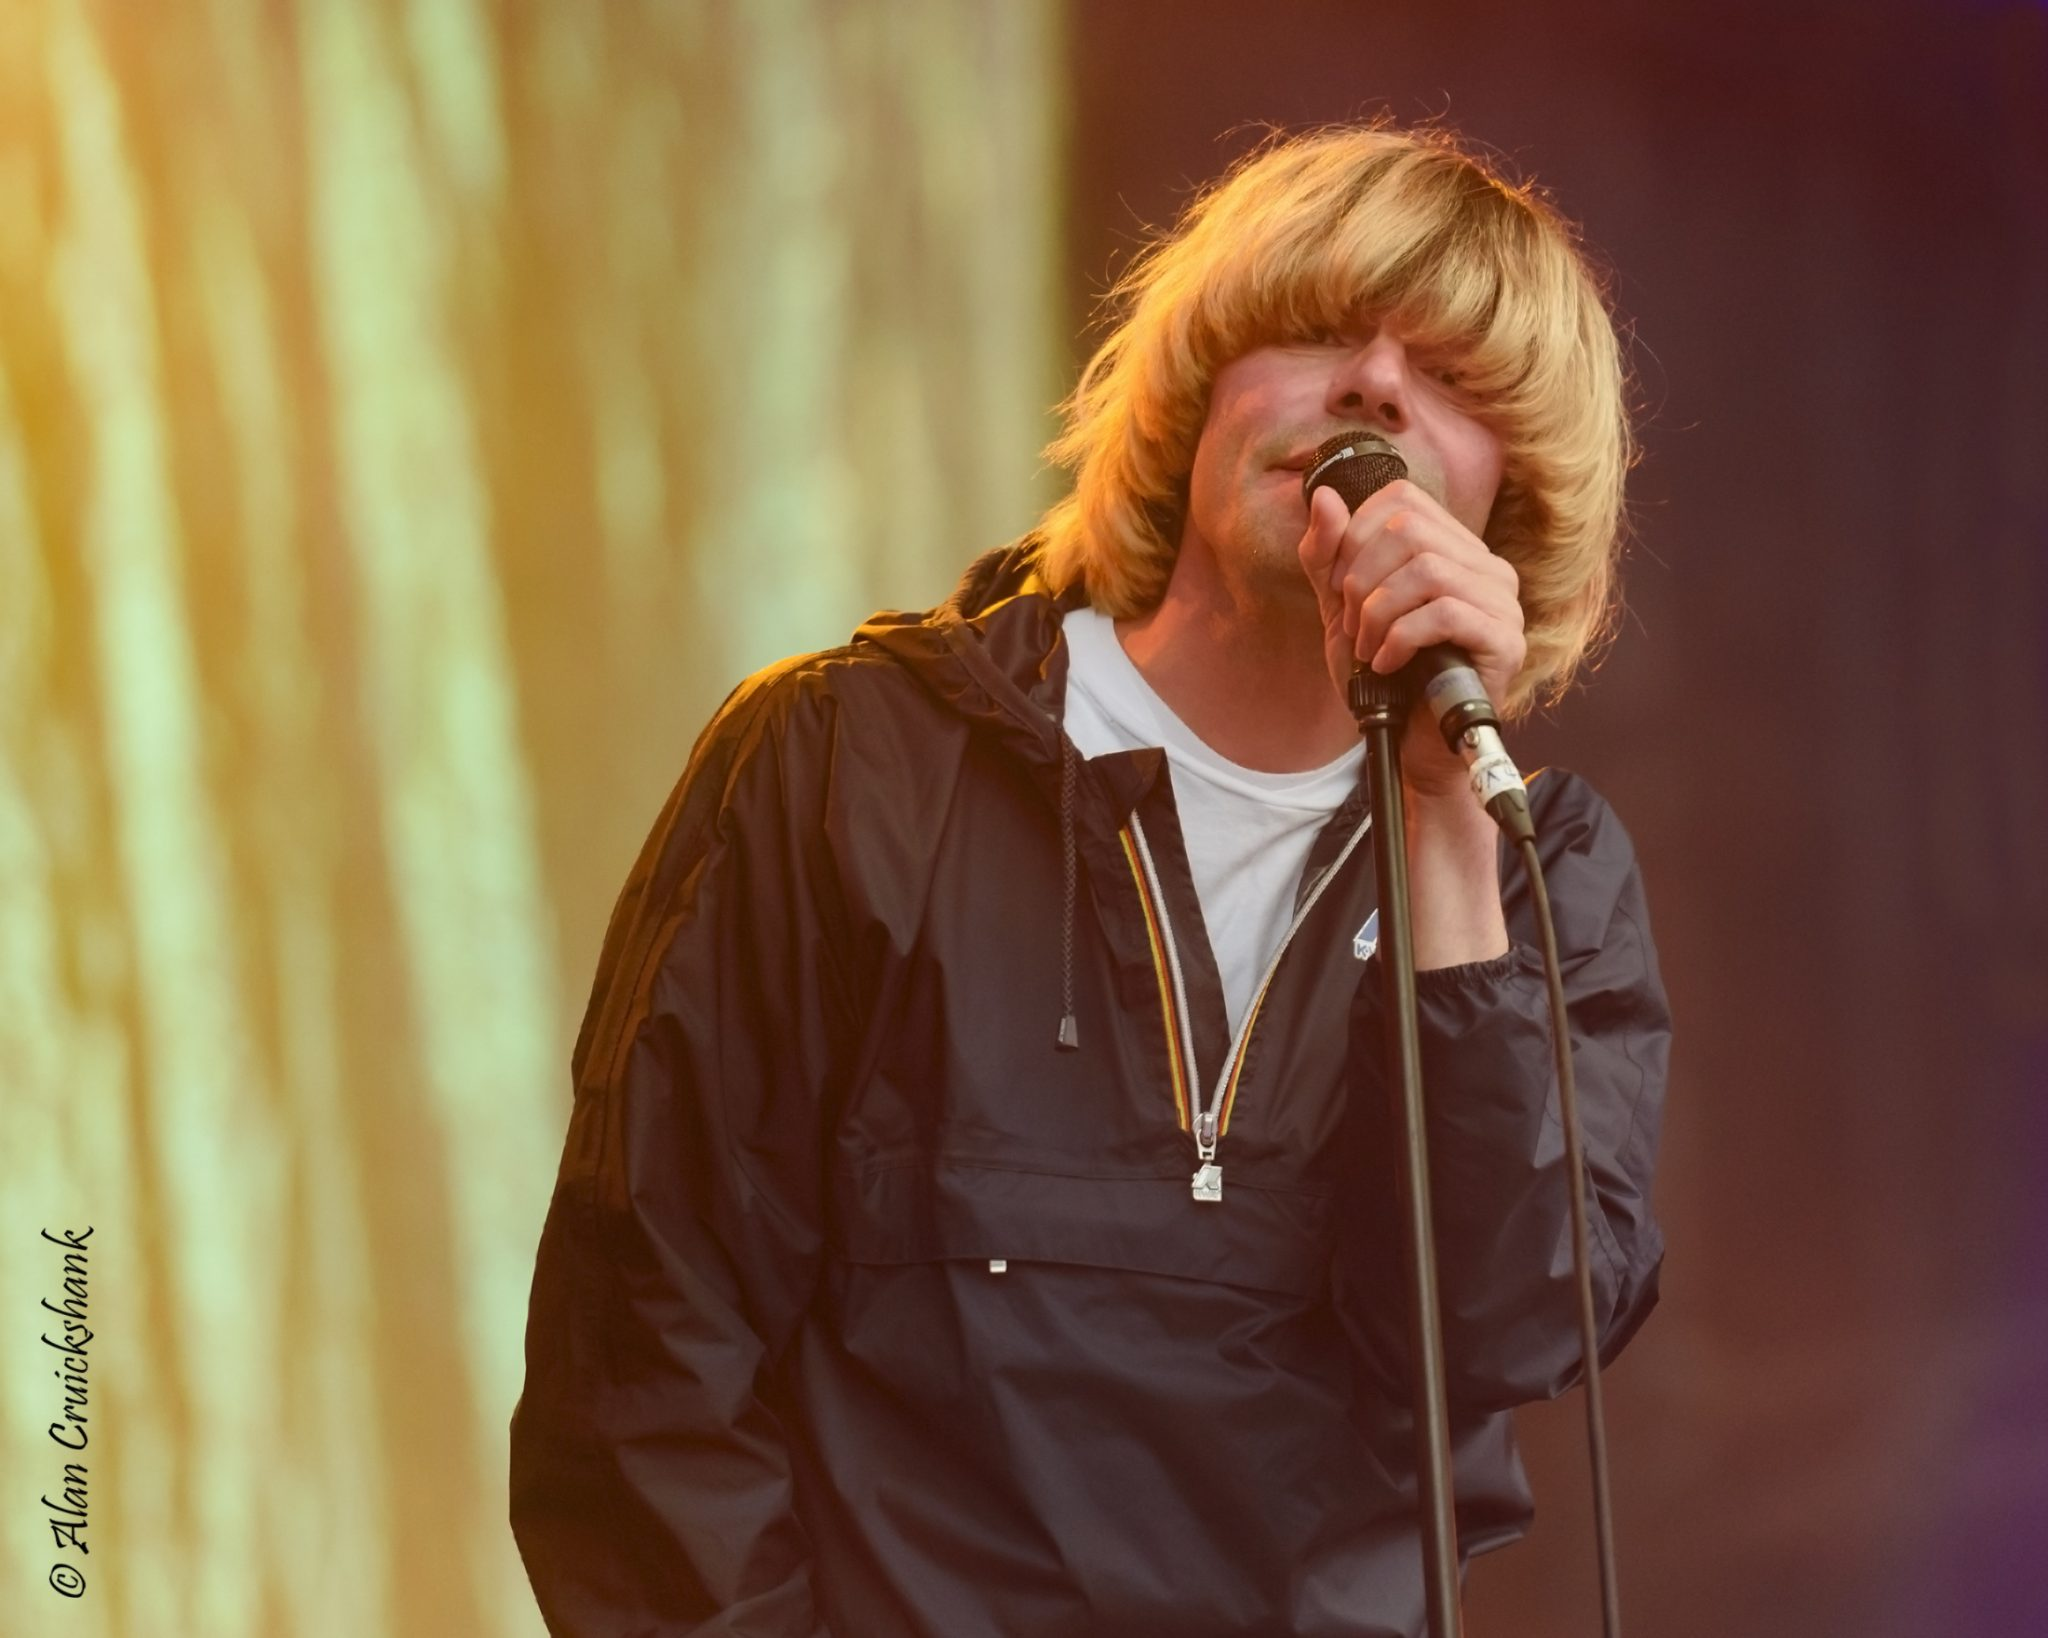 JjTBp - The Charlatans, Friday Belladrum 2018 - IMAGES